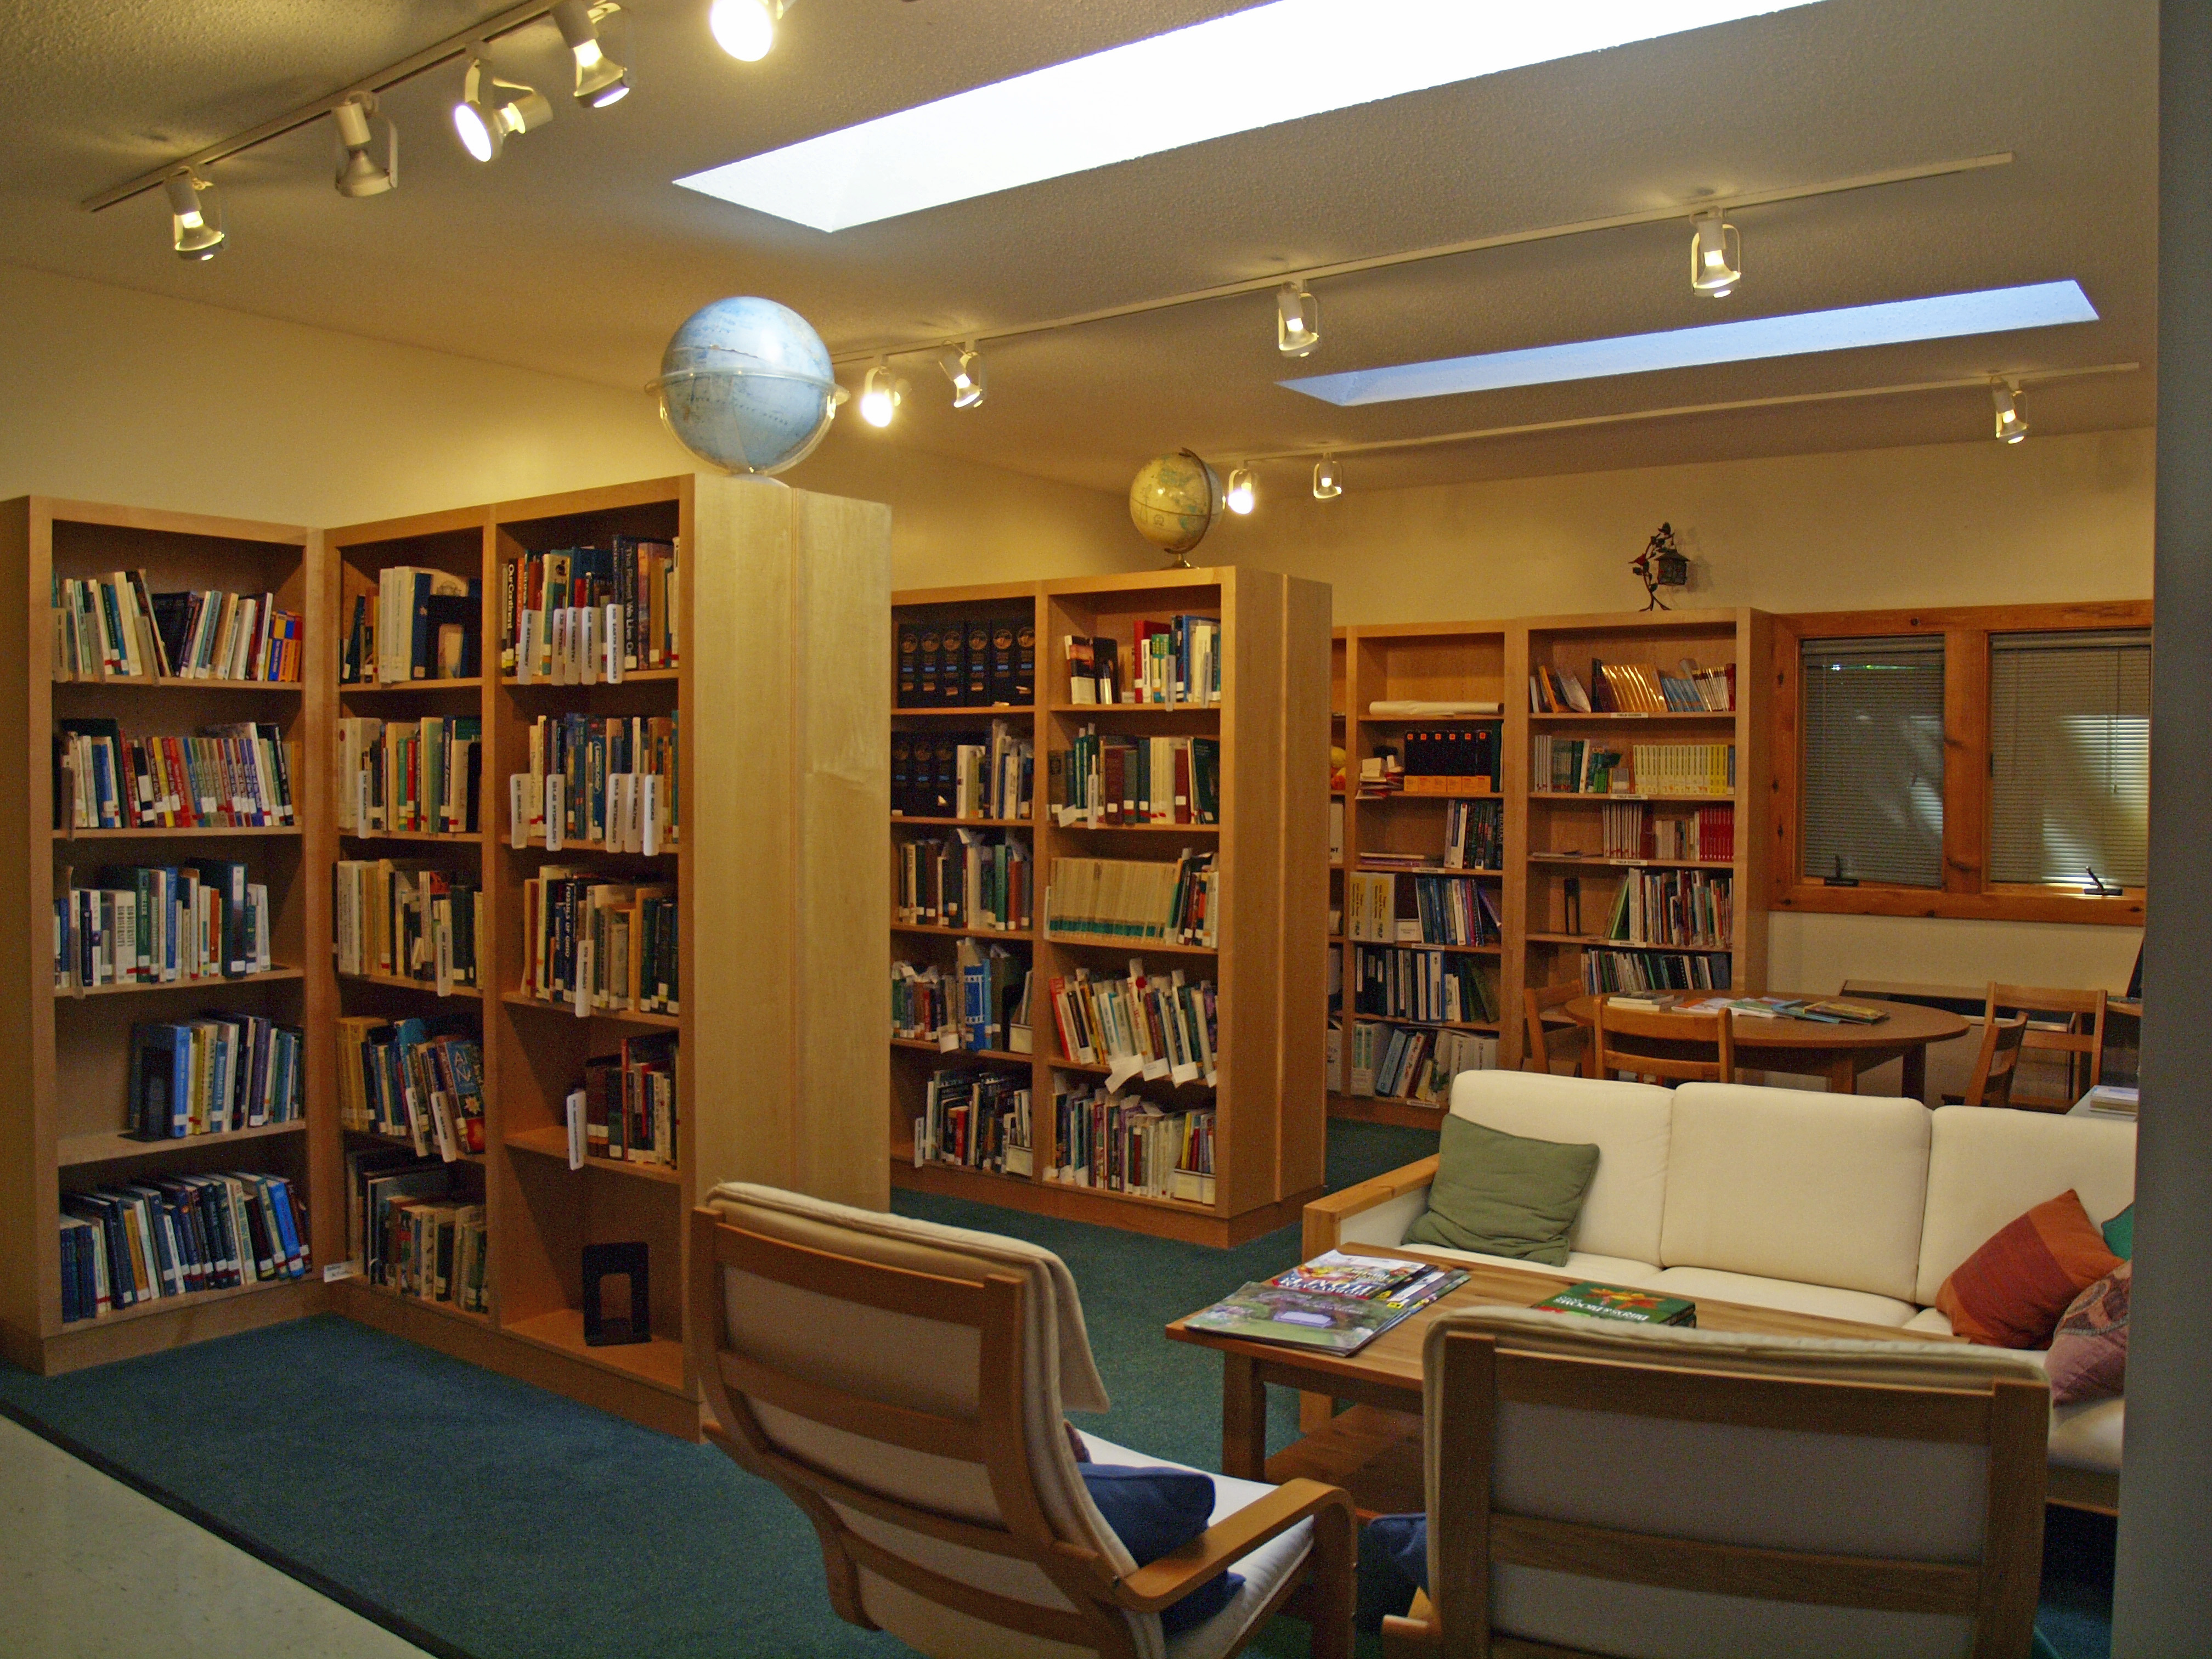 A study space with bookshelves and couches located in the Nature Center